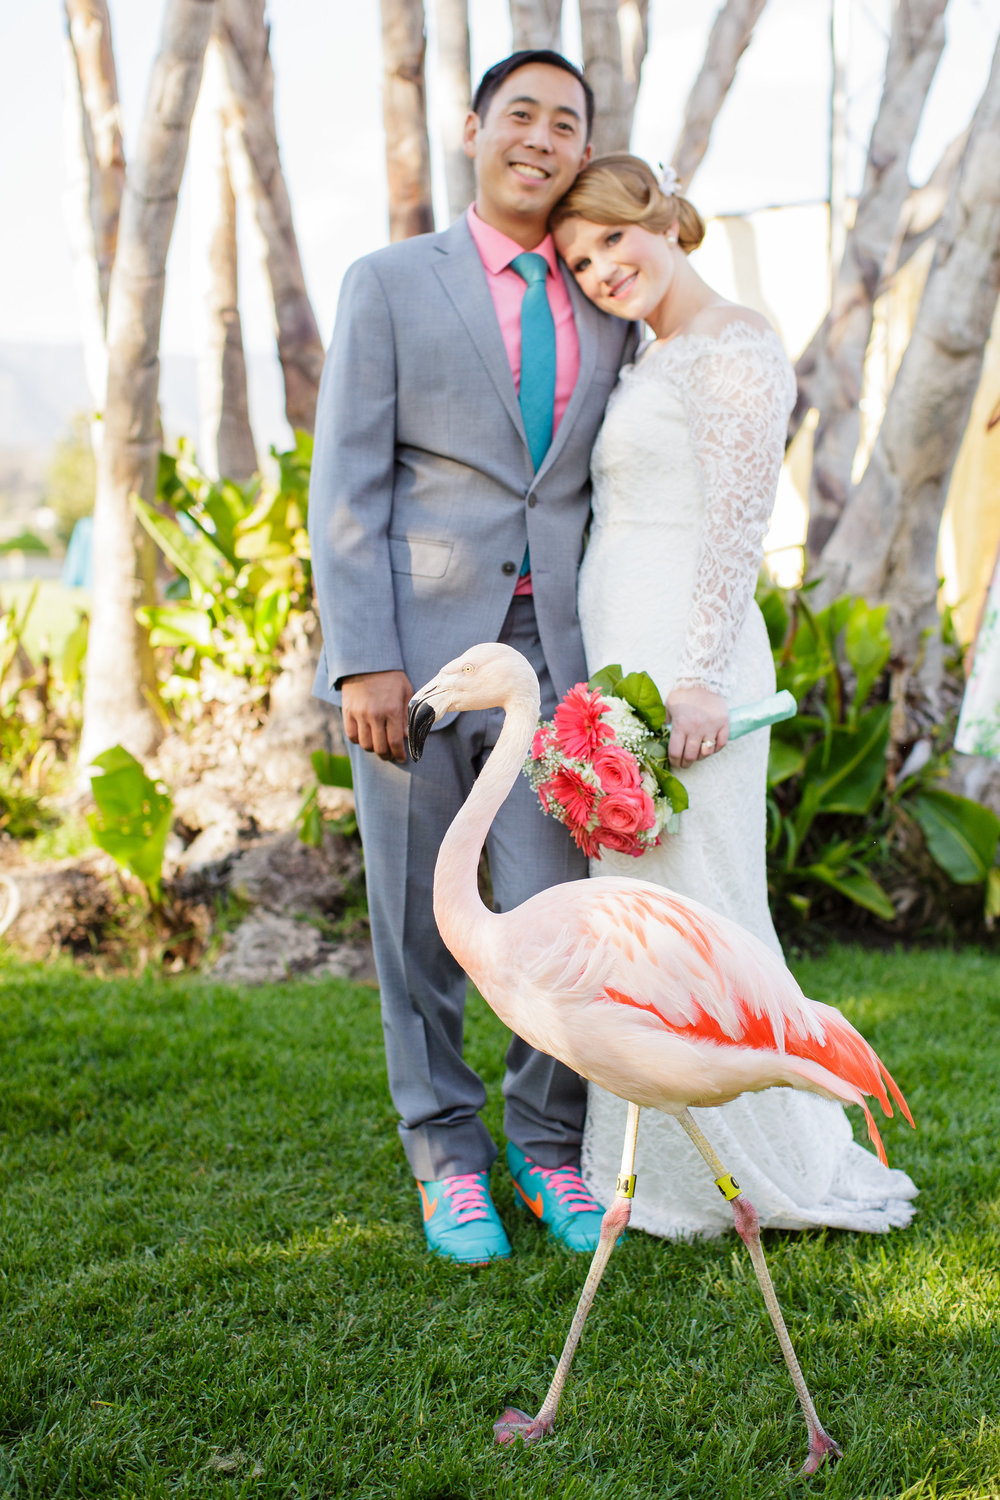 santabarbarawedding.com | Photo: Mary Jane Photography | Travel themed wedding ideas at the Santa Barbara Zoo